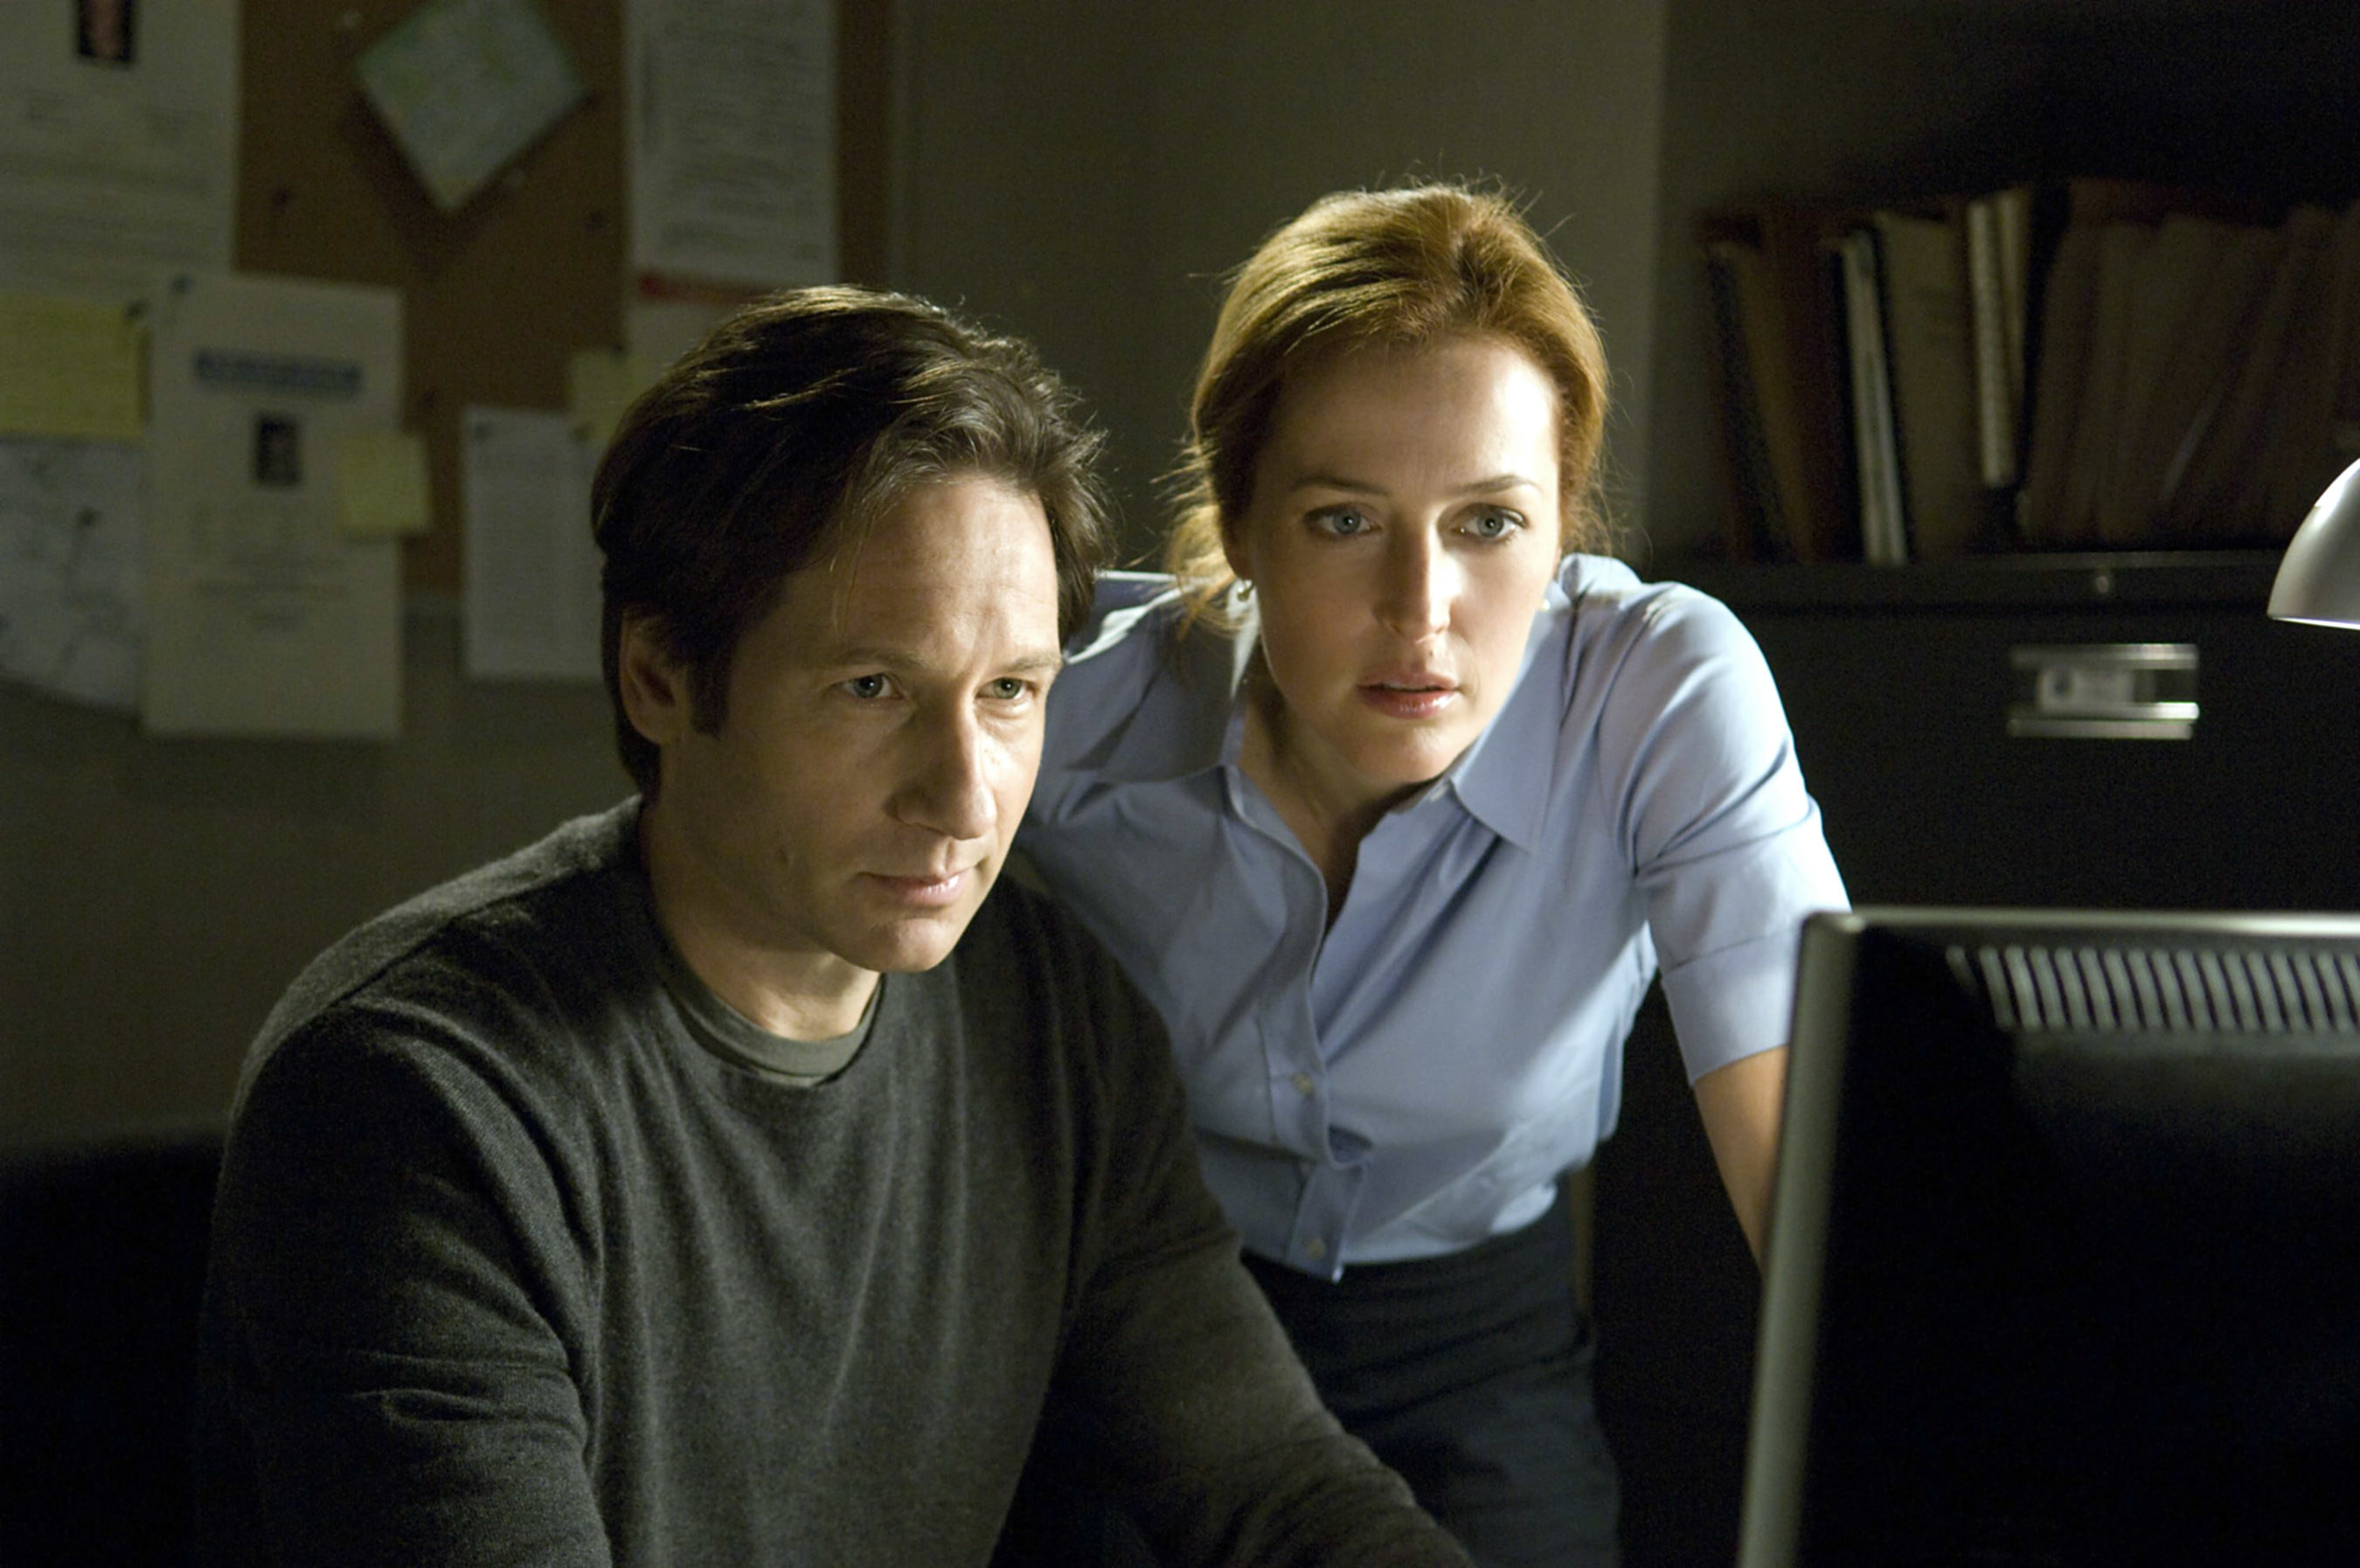 Mulder and Scully looking at computer screen